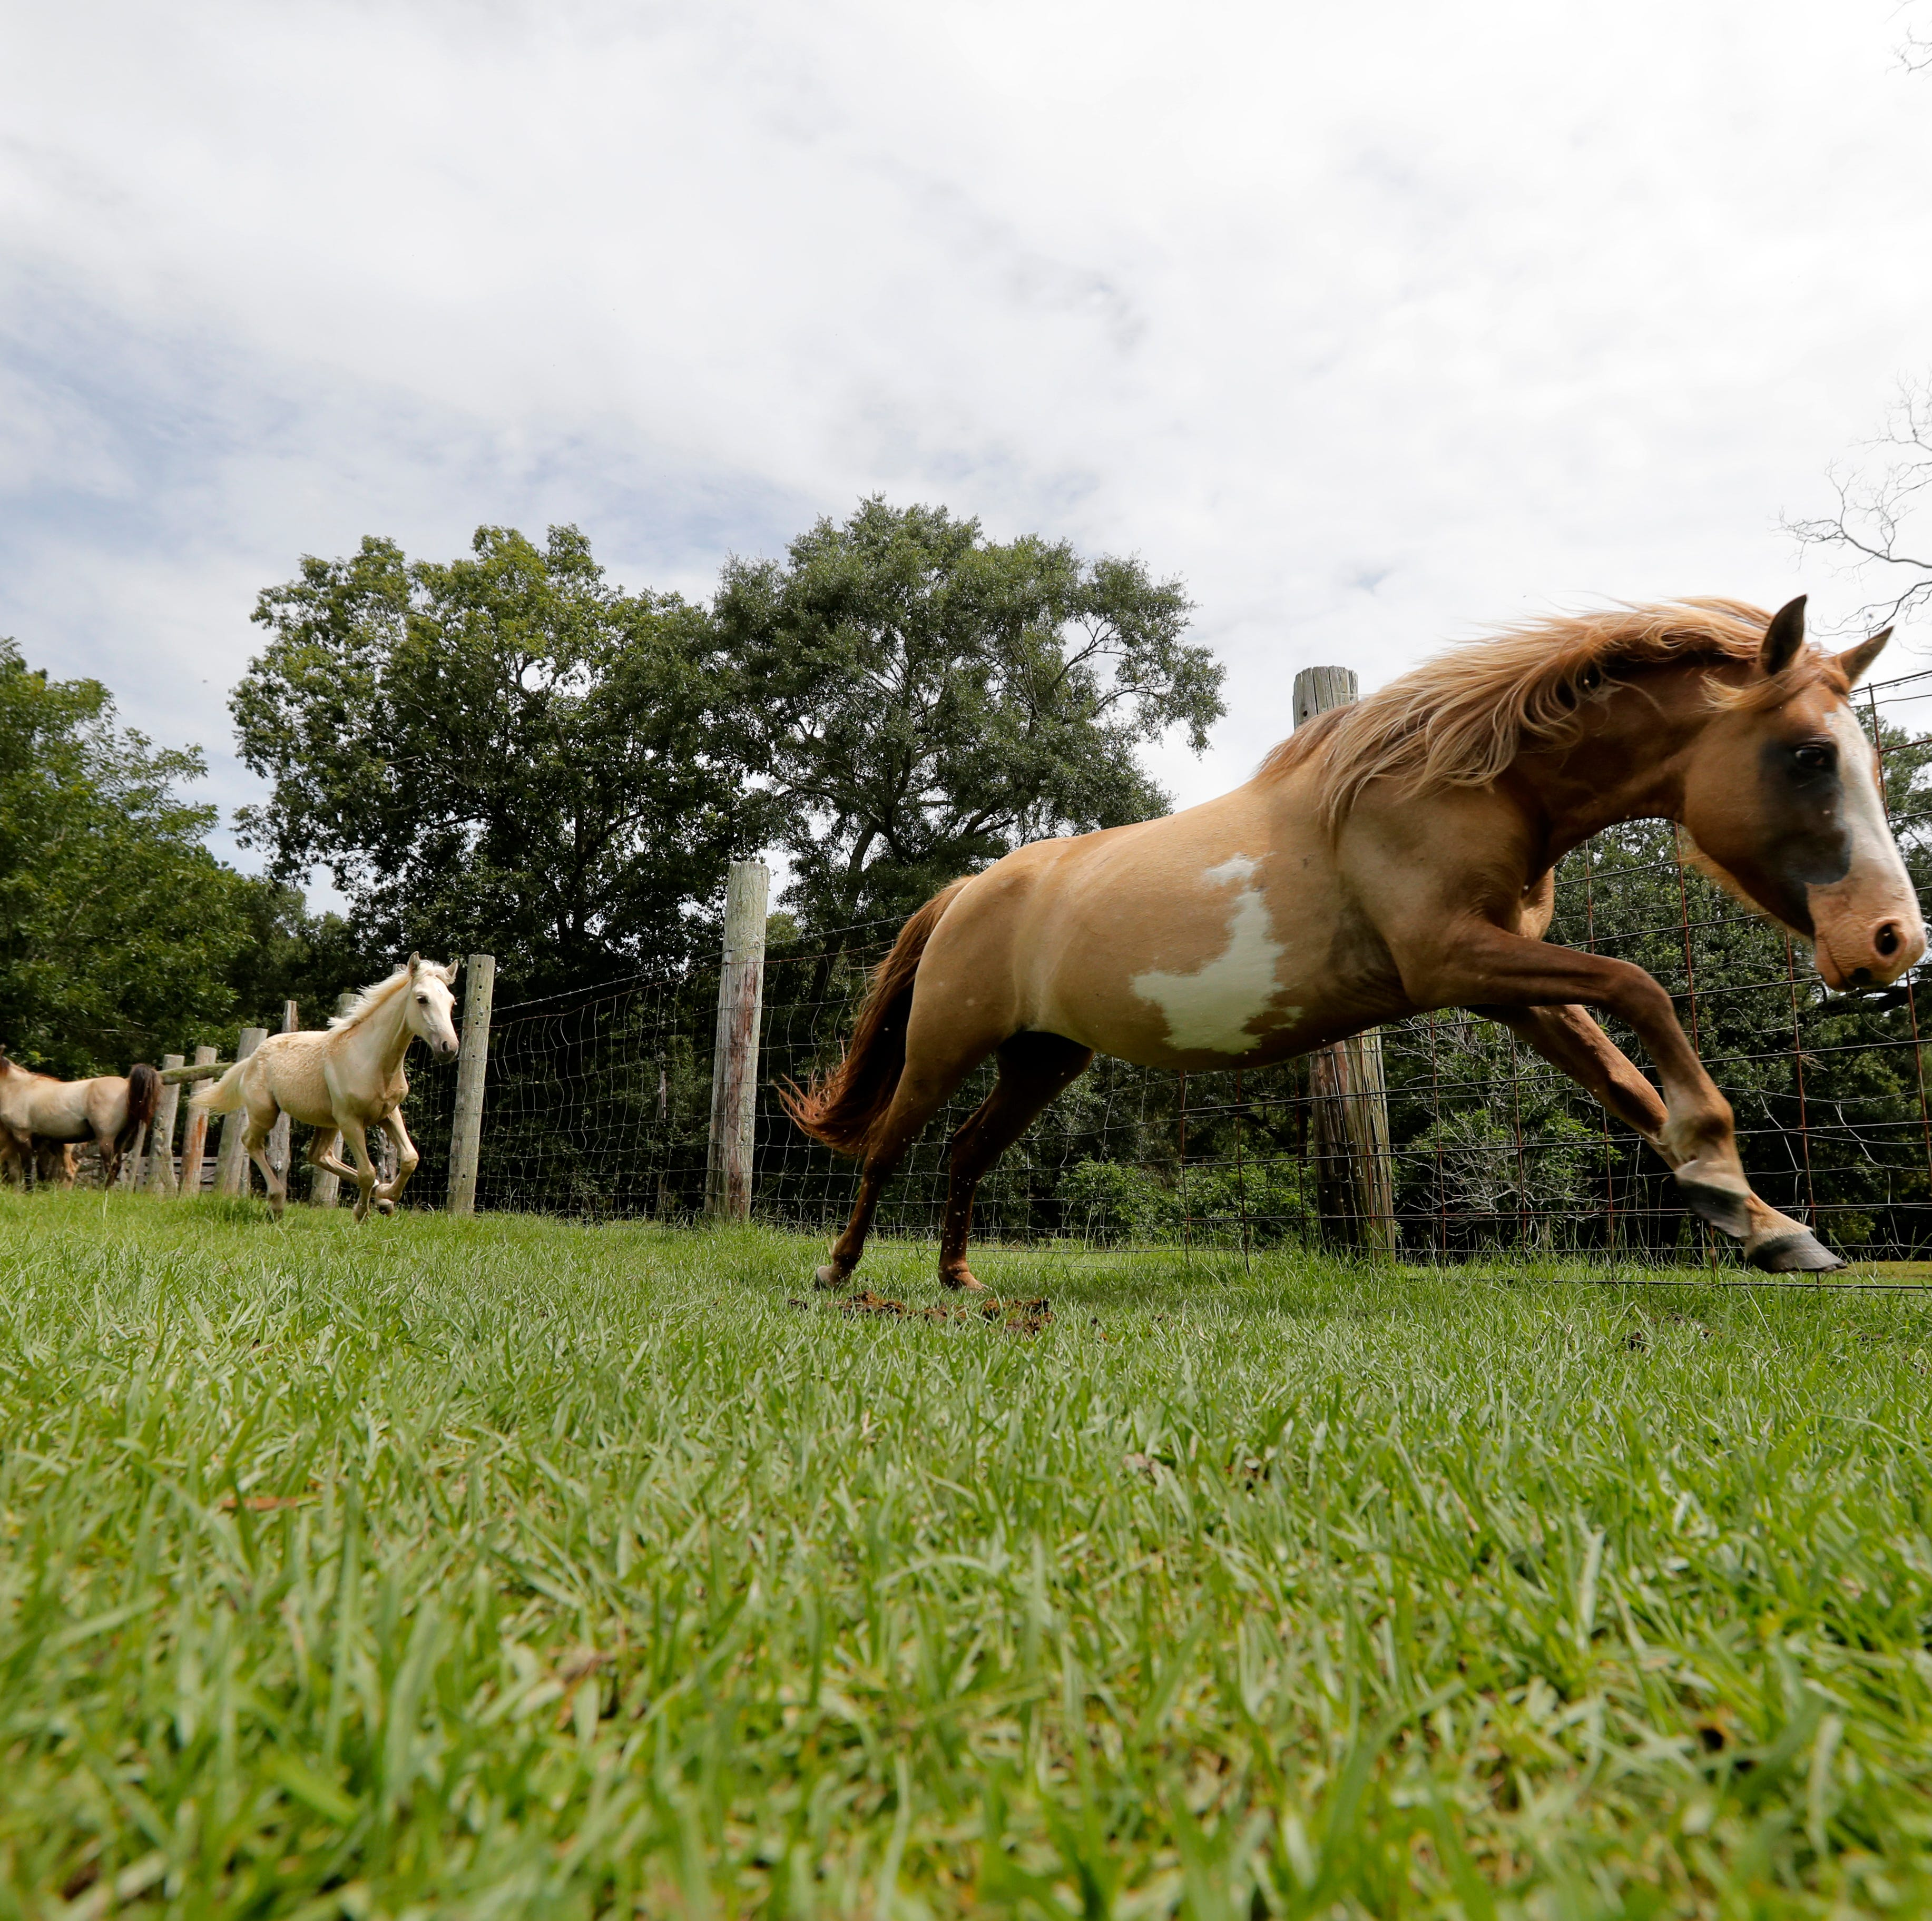 In this July 17, 2018, photo, a Choctaw mare runs on Bill Frank Brown's farm in Poplarville, Miss. An aging stallion found by accident on a Mississippi farm is bringing the first new blood in a century for a line of horses brought to America by Spanish conquistadors and bred by Choctaw Indians who were later forced out of their ancestral homelands. (AP Photo/Gerald Herbert)